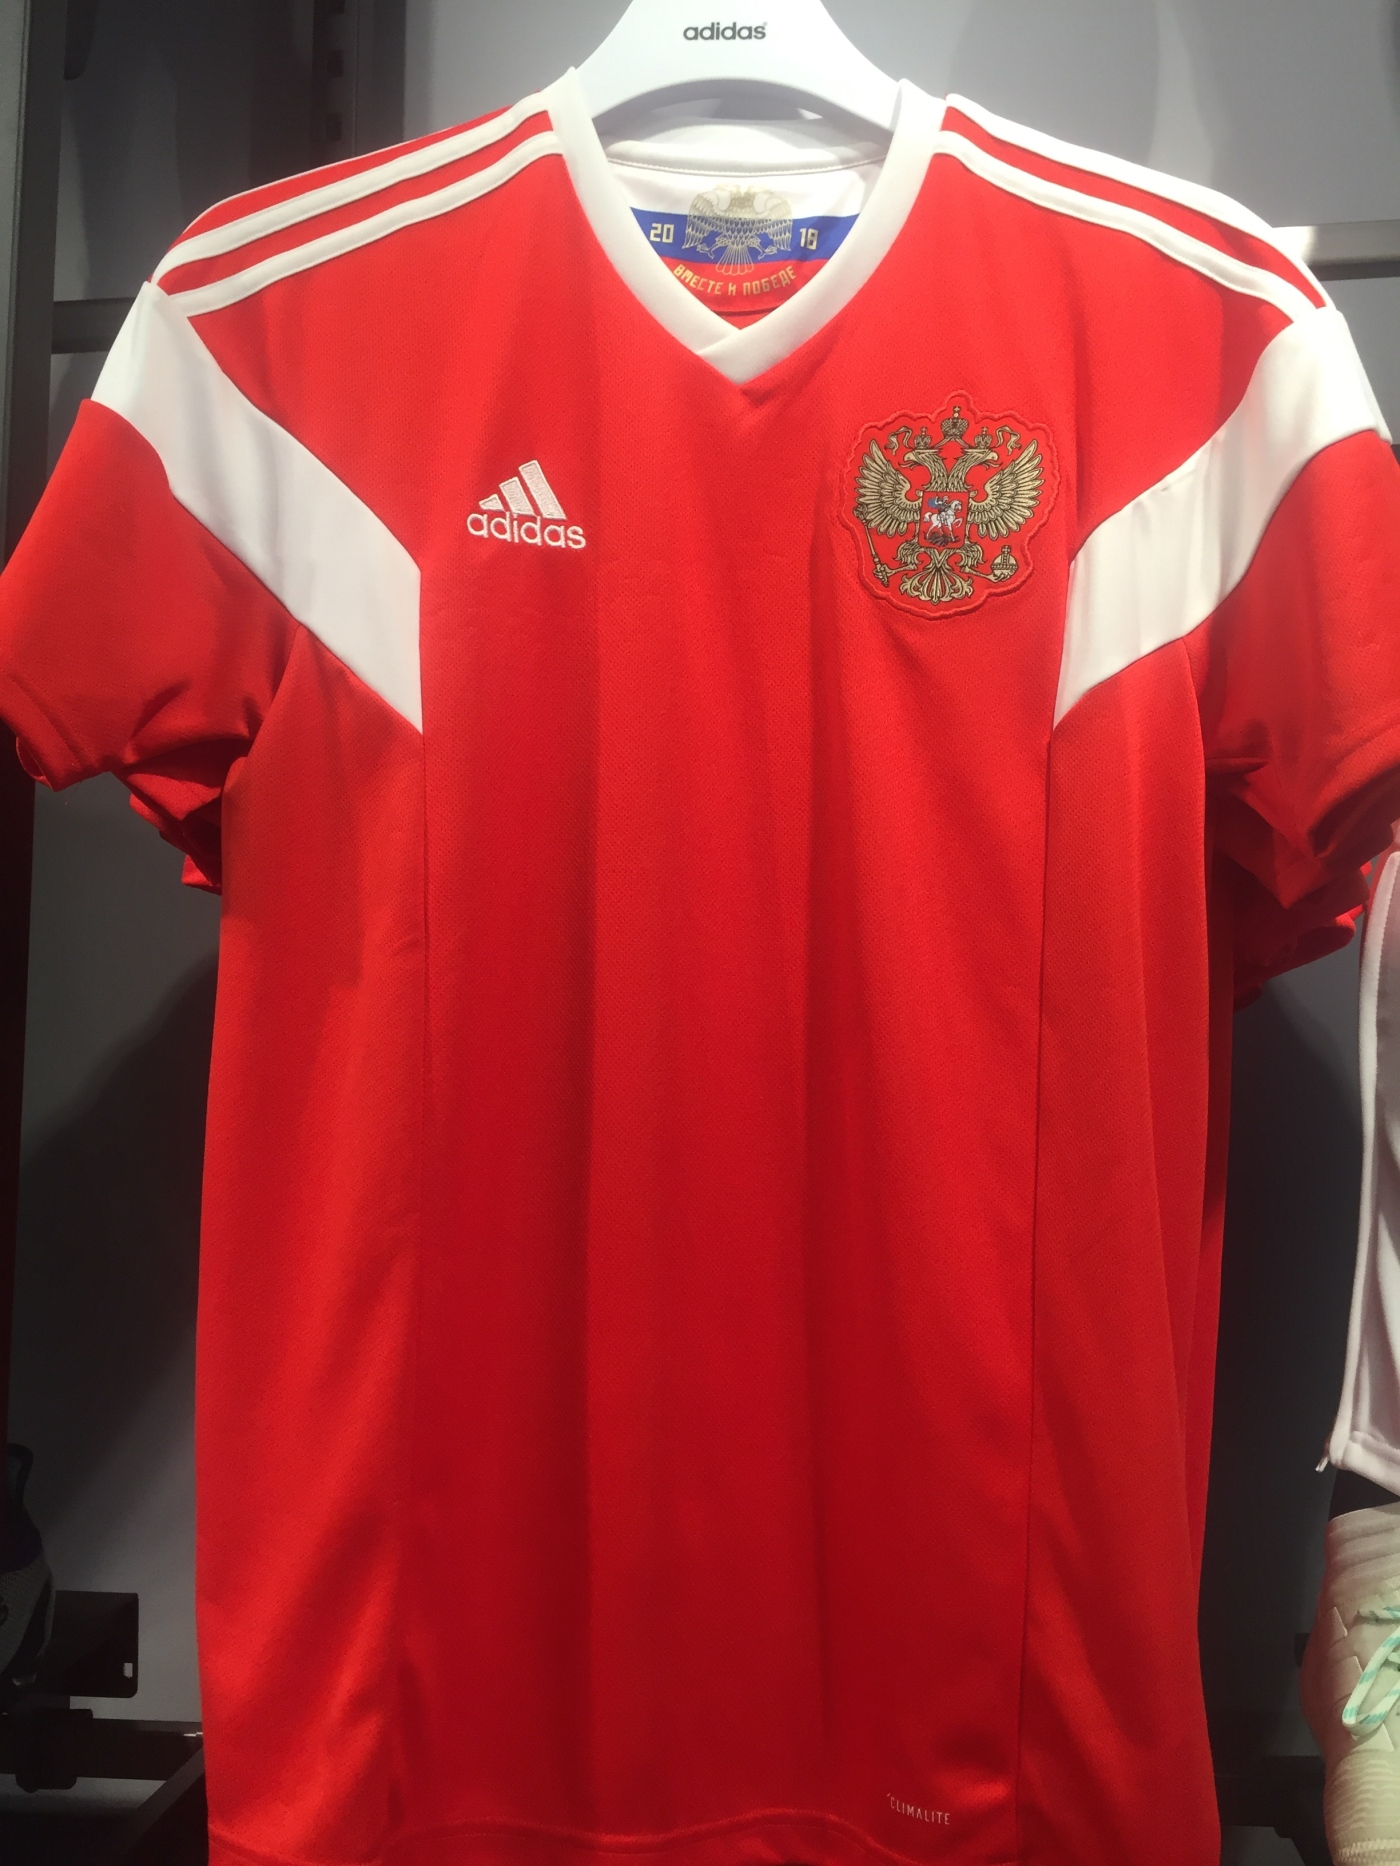 45586f440a9 The hosts of the 2018 World Cup decided to go with an all red home kit.  While the 2018 Russia Adidas home jersey is uncomplicated and features a  very regal ...